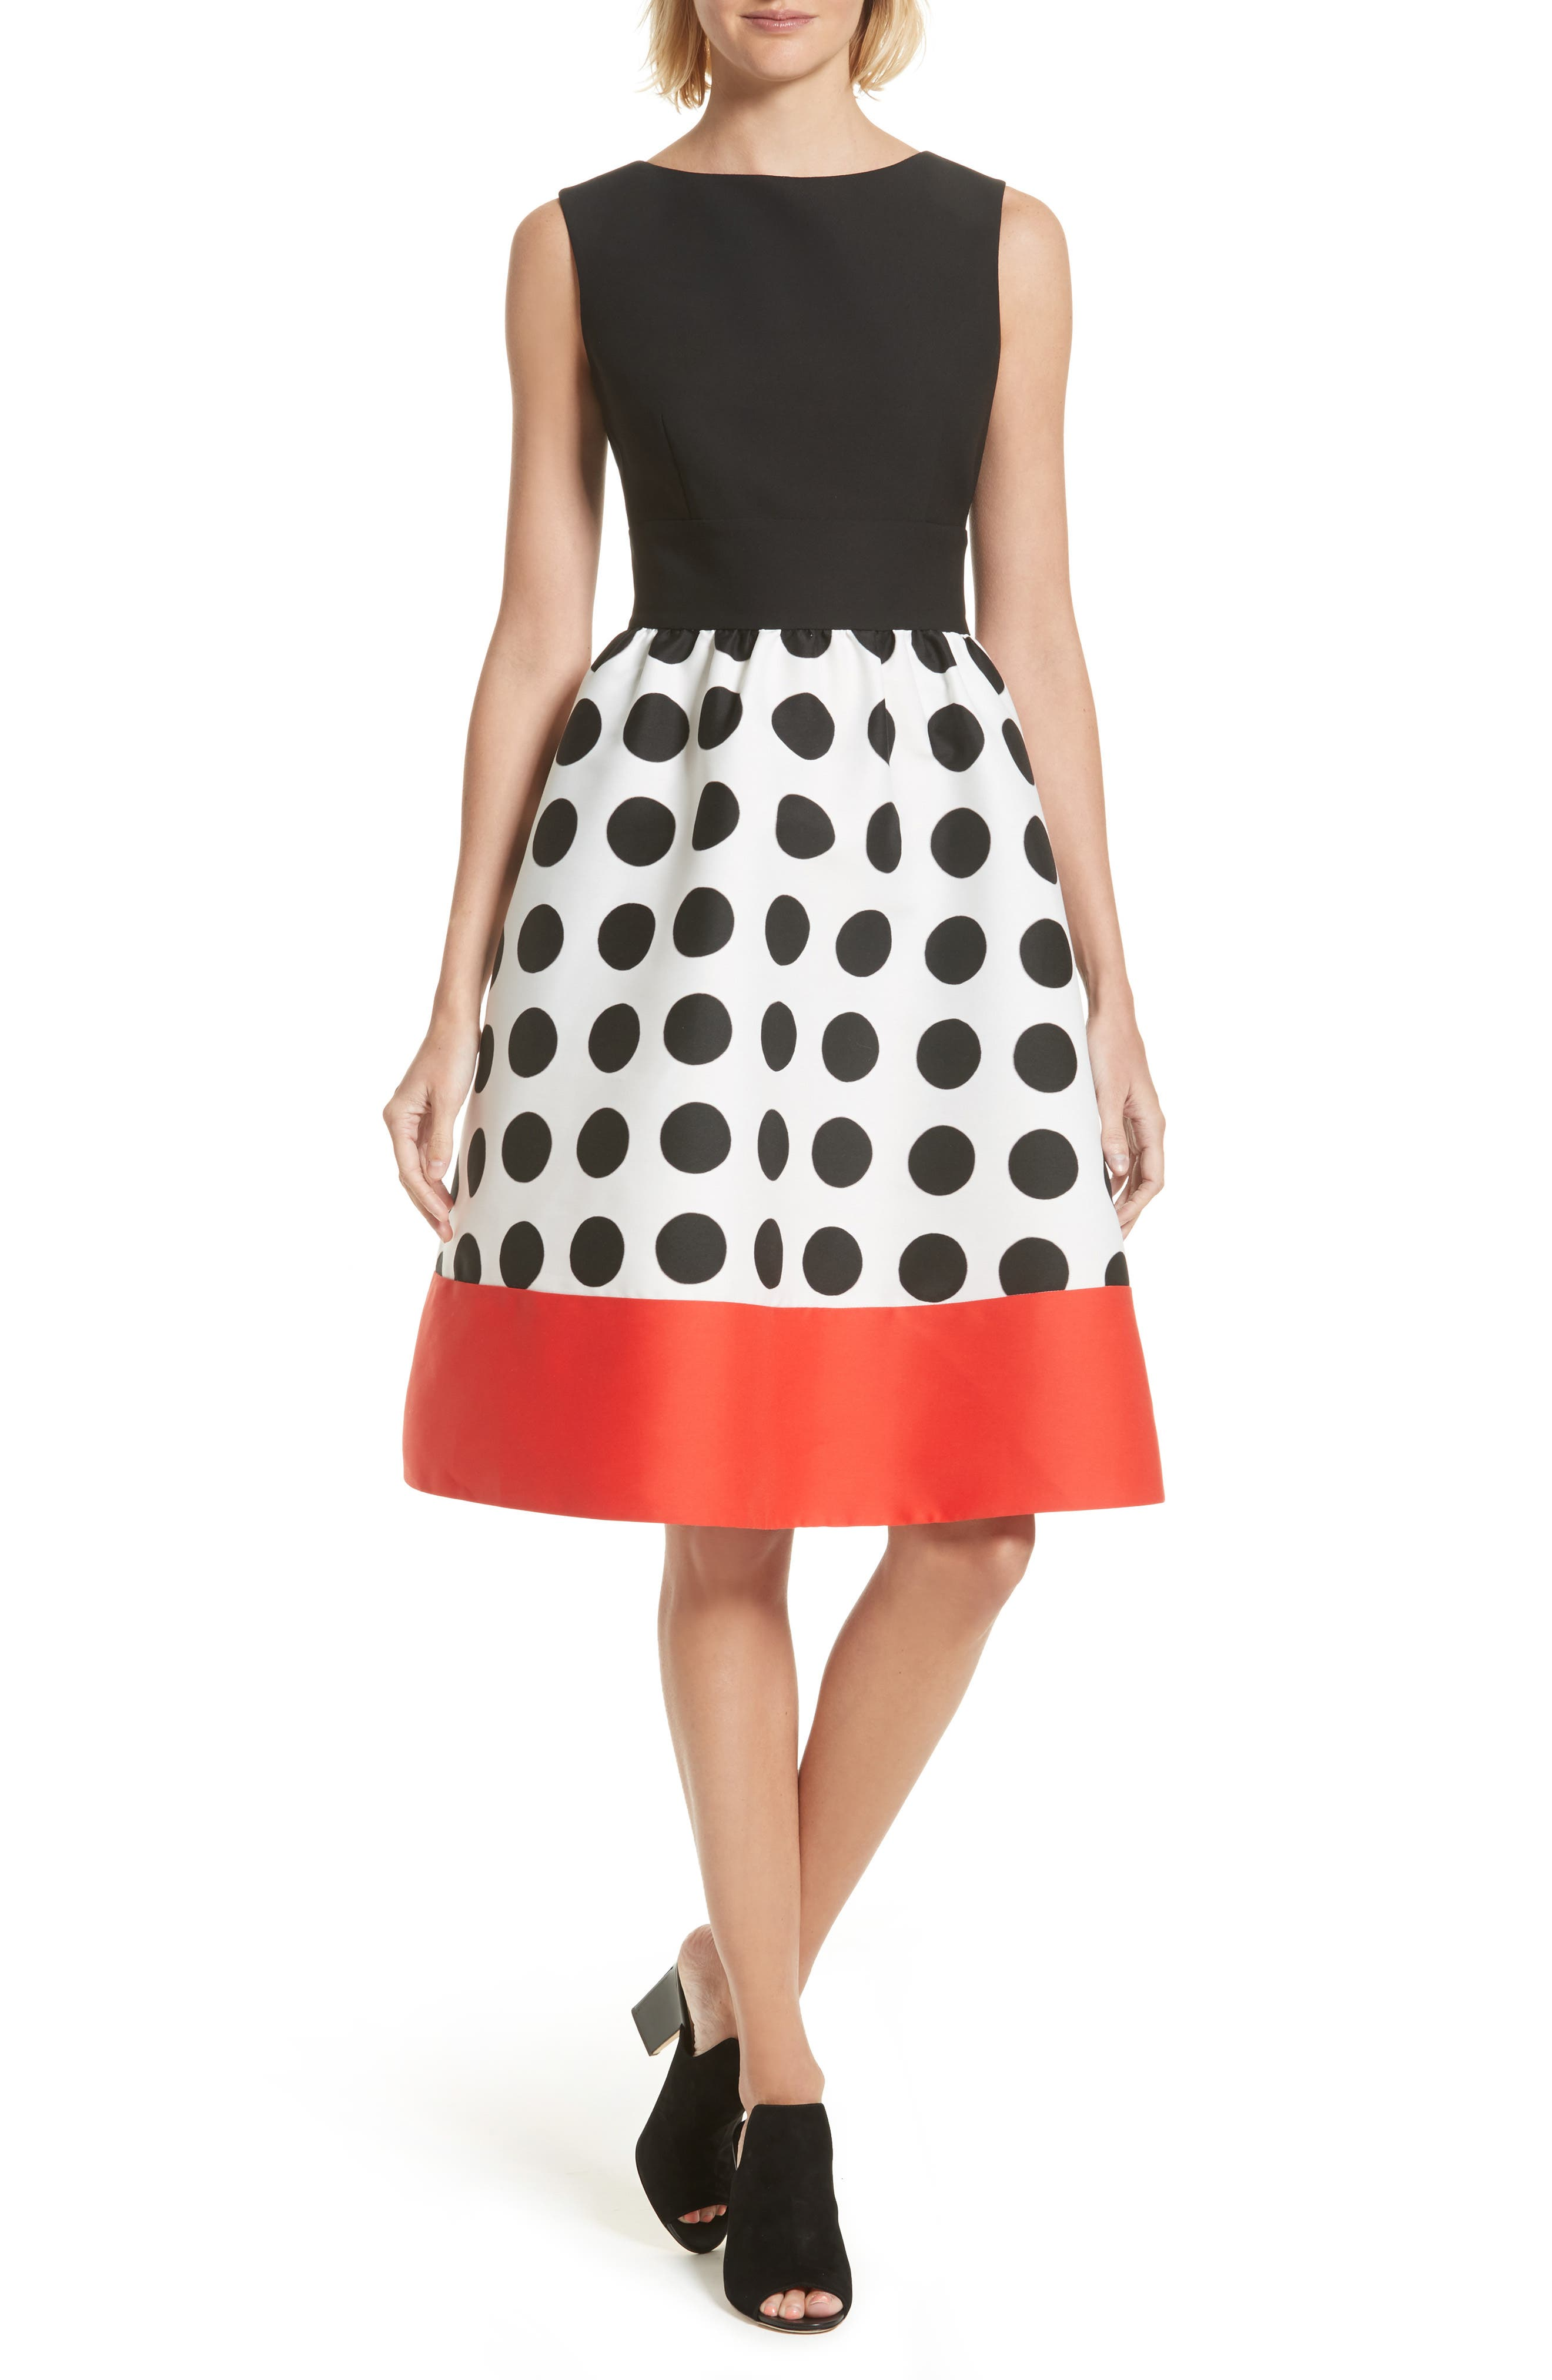 Kate Spade New York is known for bold and stylish high-end designer clothing, designer shoes, women's fashion accessories and more. Get your fashion fix with Cash Back at Ebates on trendy handbags, wallets, glasses, and women's shoes.